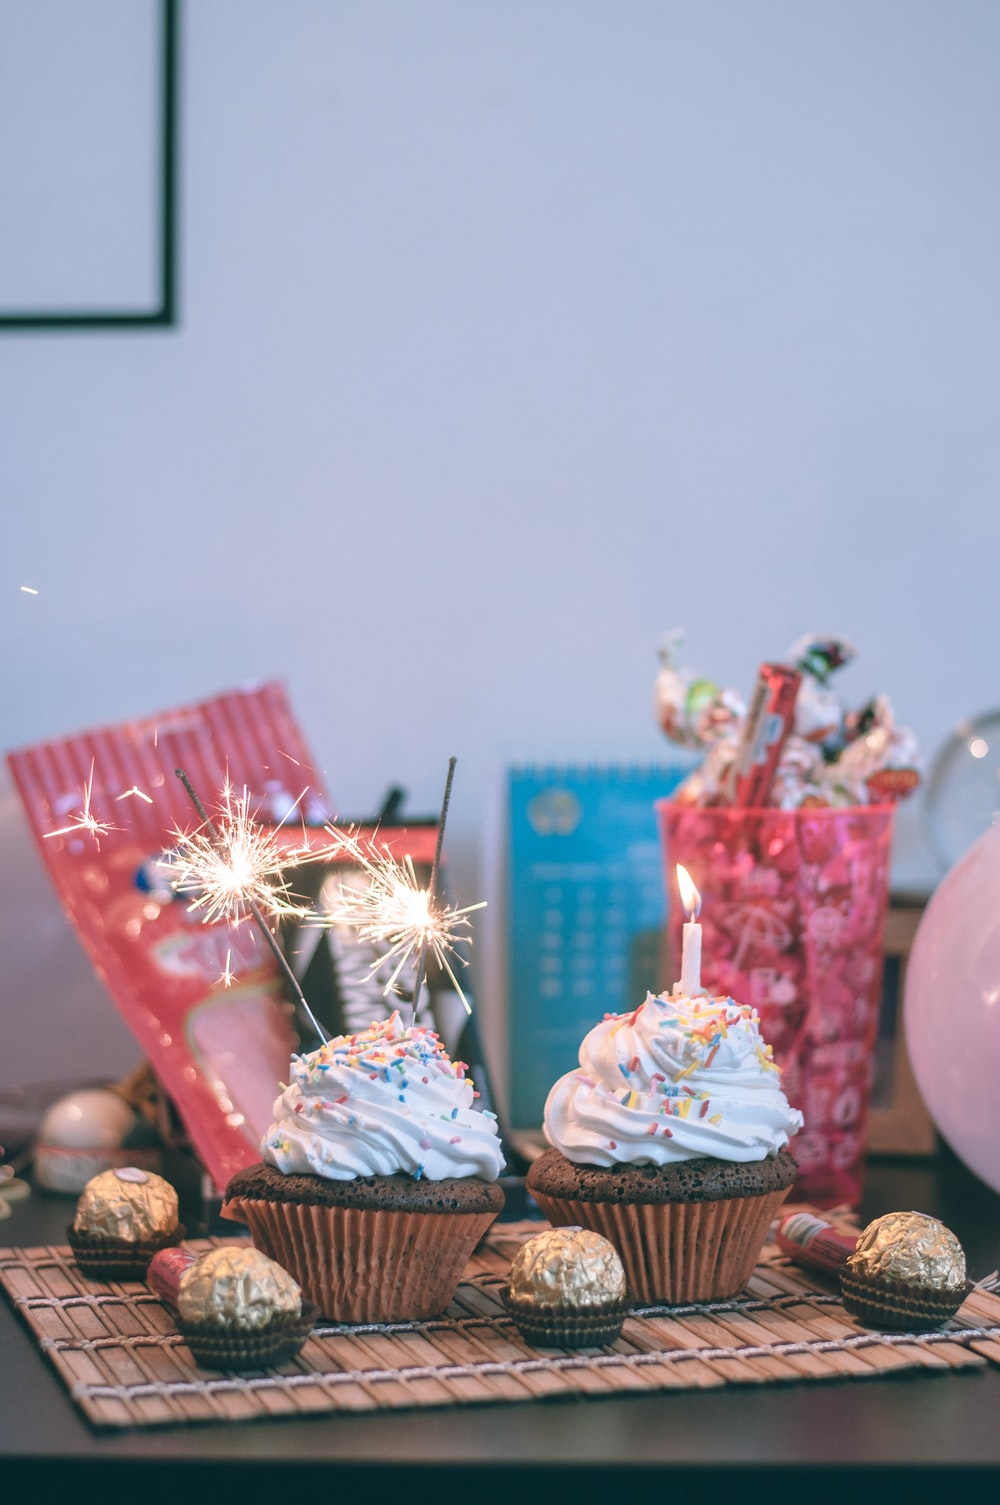 candles and sparkler on cupcakes